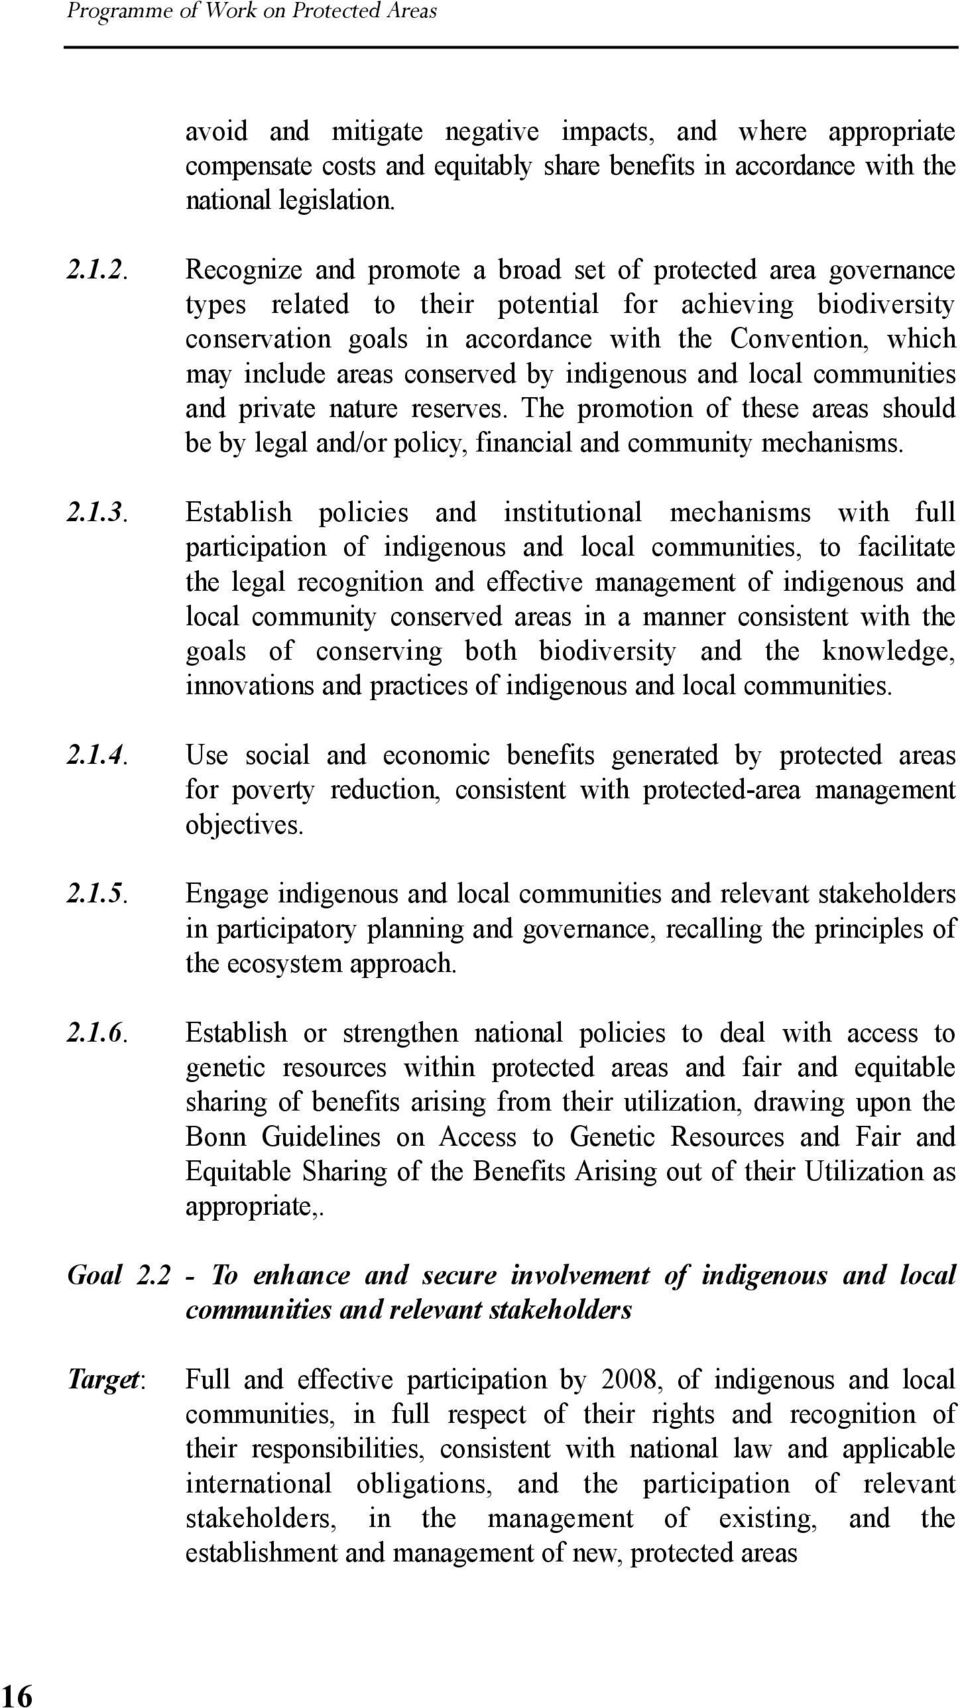 areas conserved by indigenous and local communities and private nature reserves. The promotion of these areas should be by legal and/or policy, financial and community mechanisms. 2.1.3.